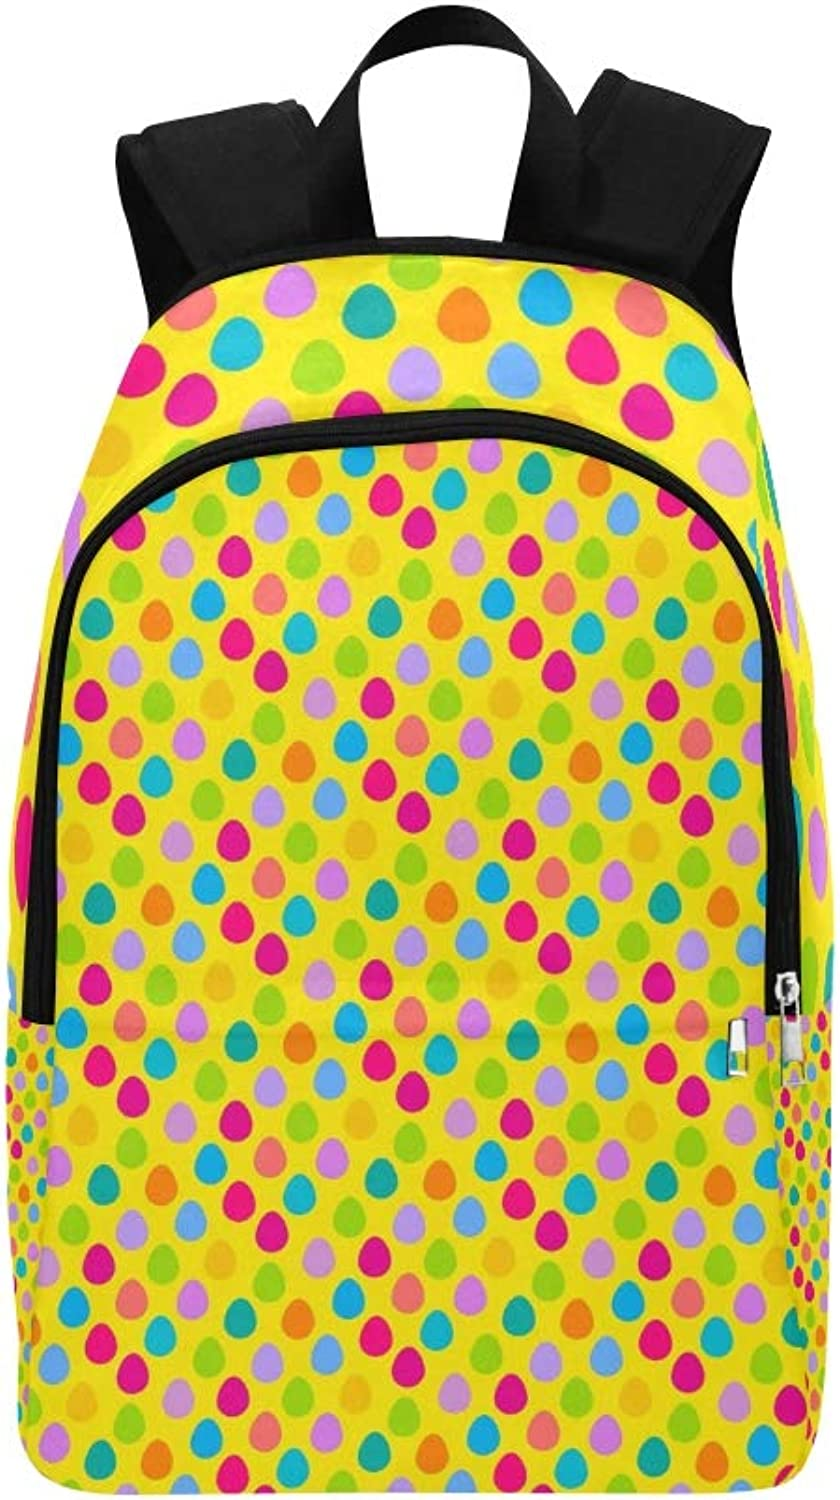 Easter Egg Hunt Yellow Casual Daypack Travel Bag College School Backpack for Mens and Women